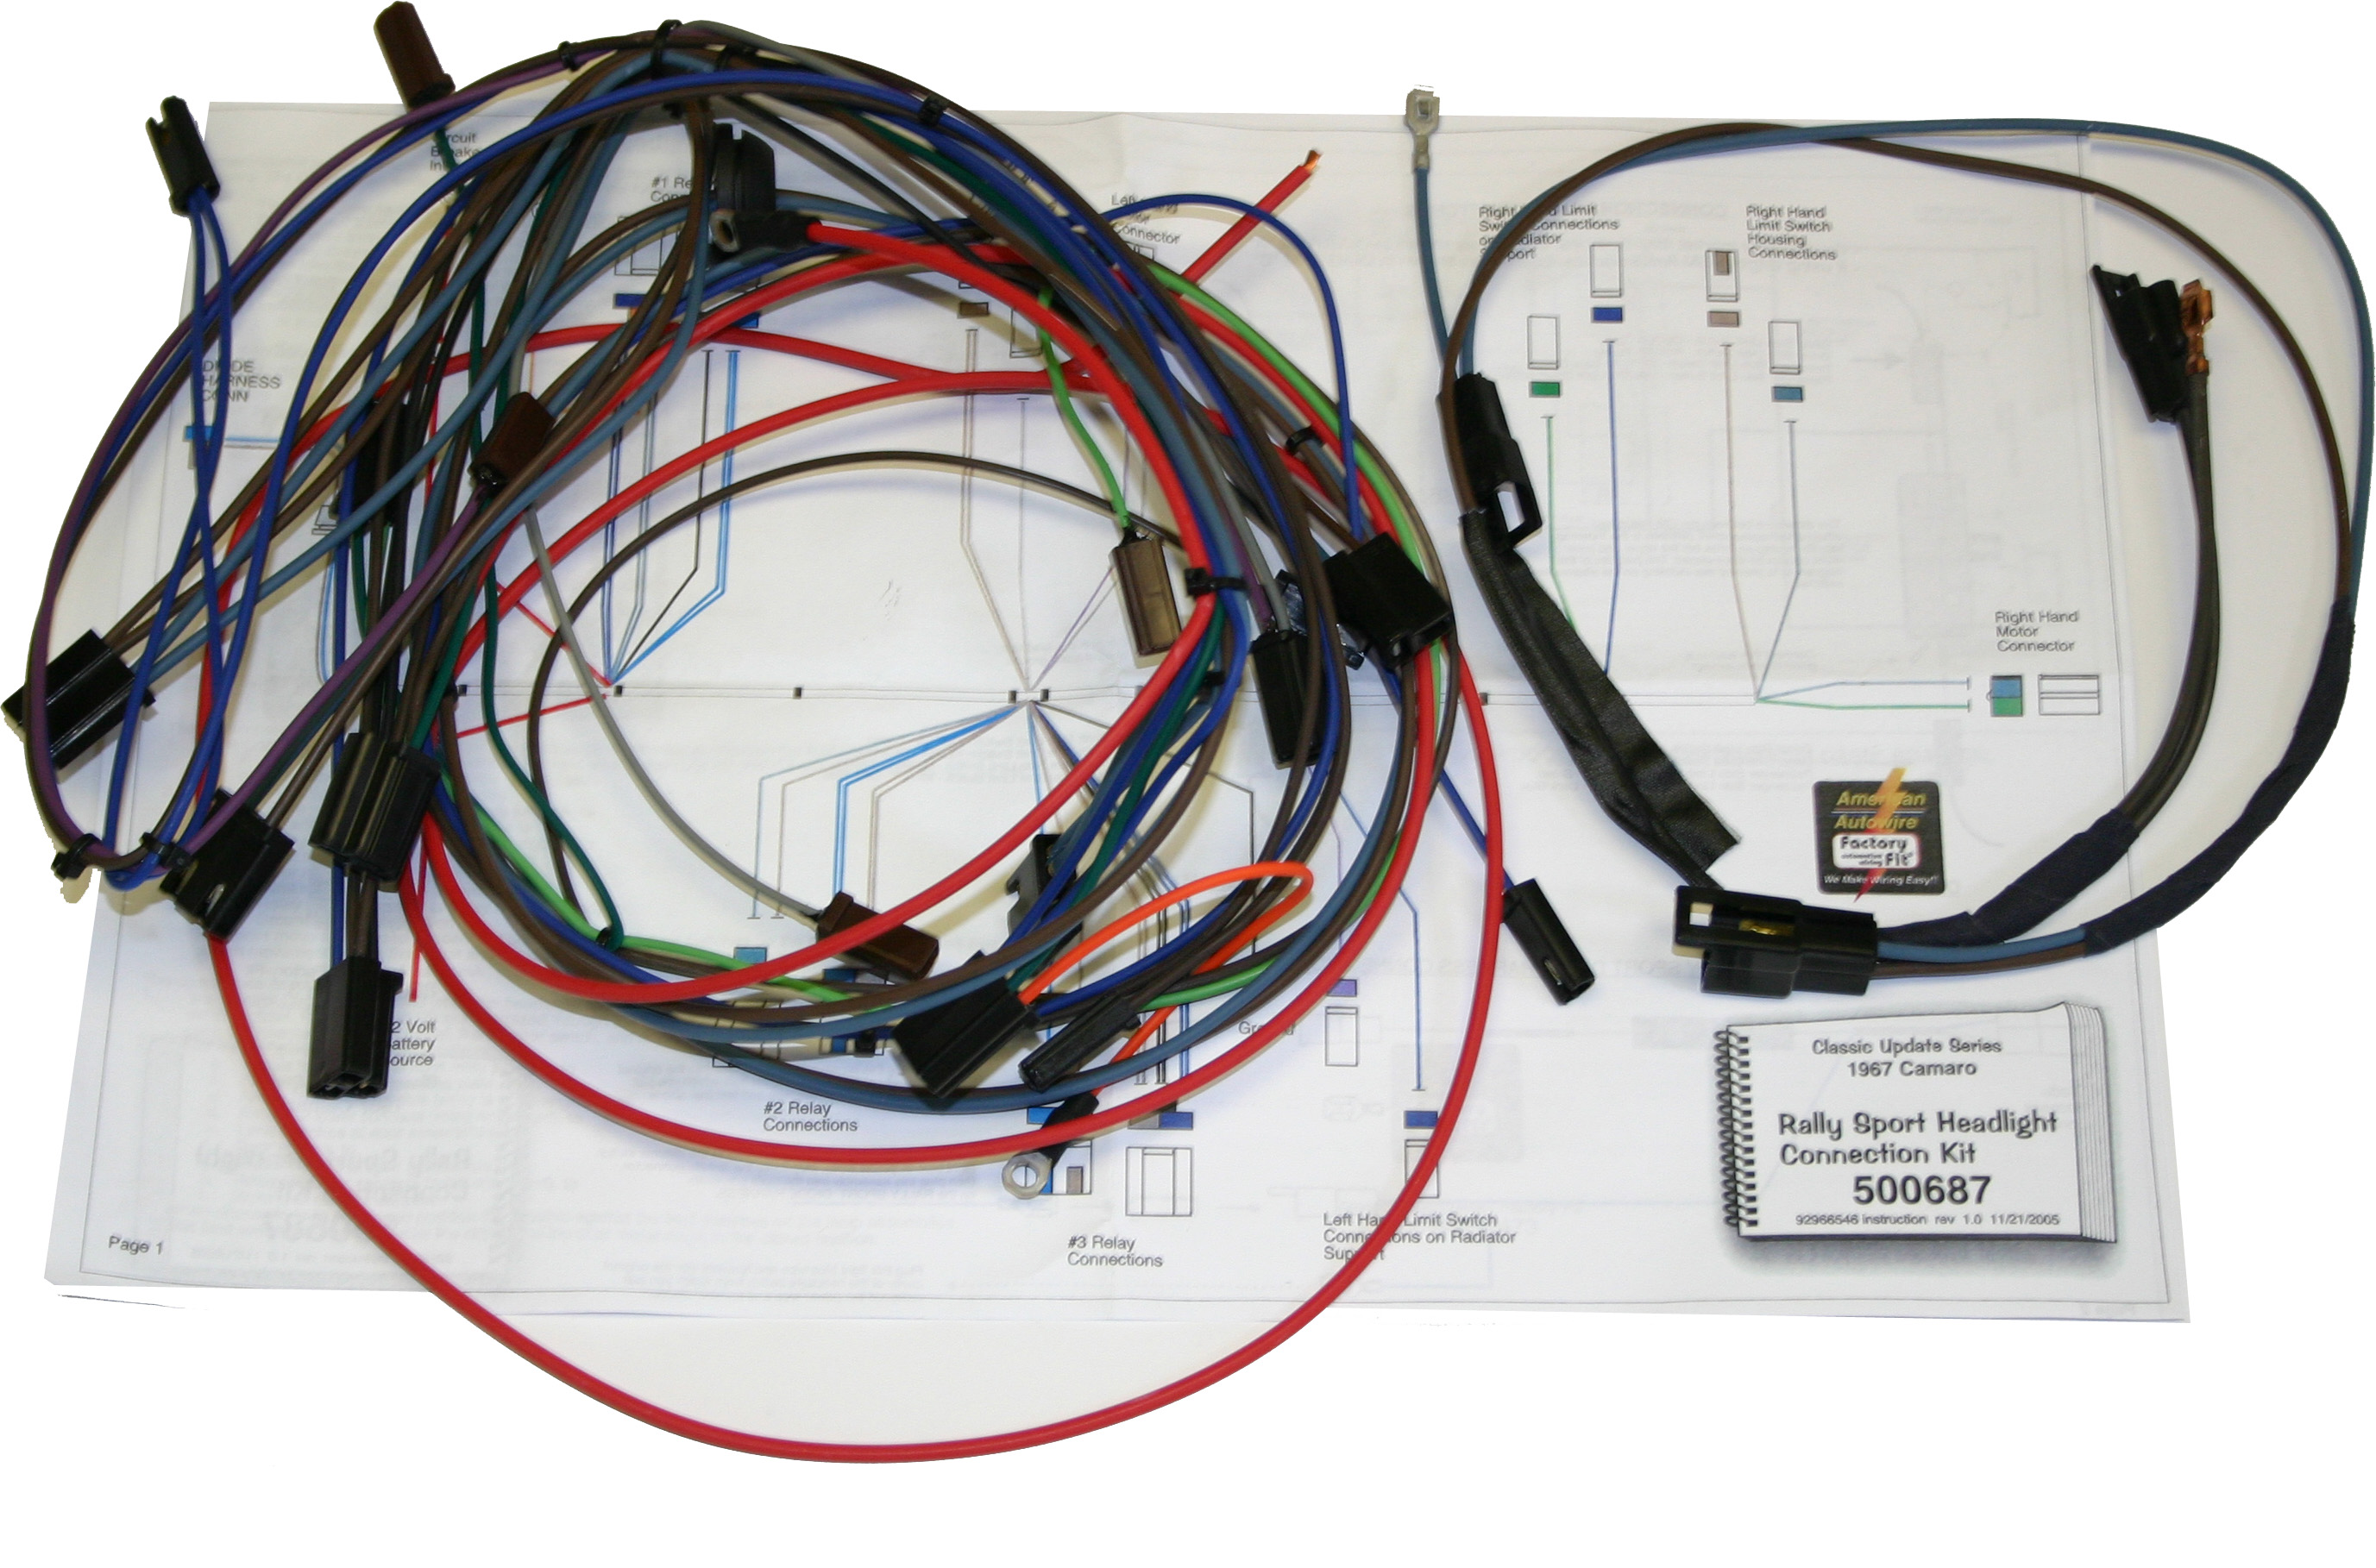 500773 67 68 camaro firebird classic update wiring harness 500661 69 camaro painless wiring harness at fashall.co